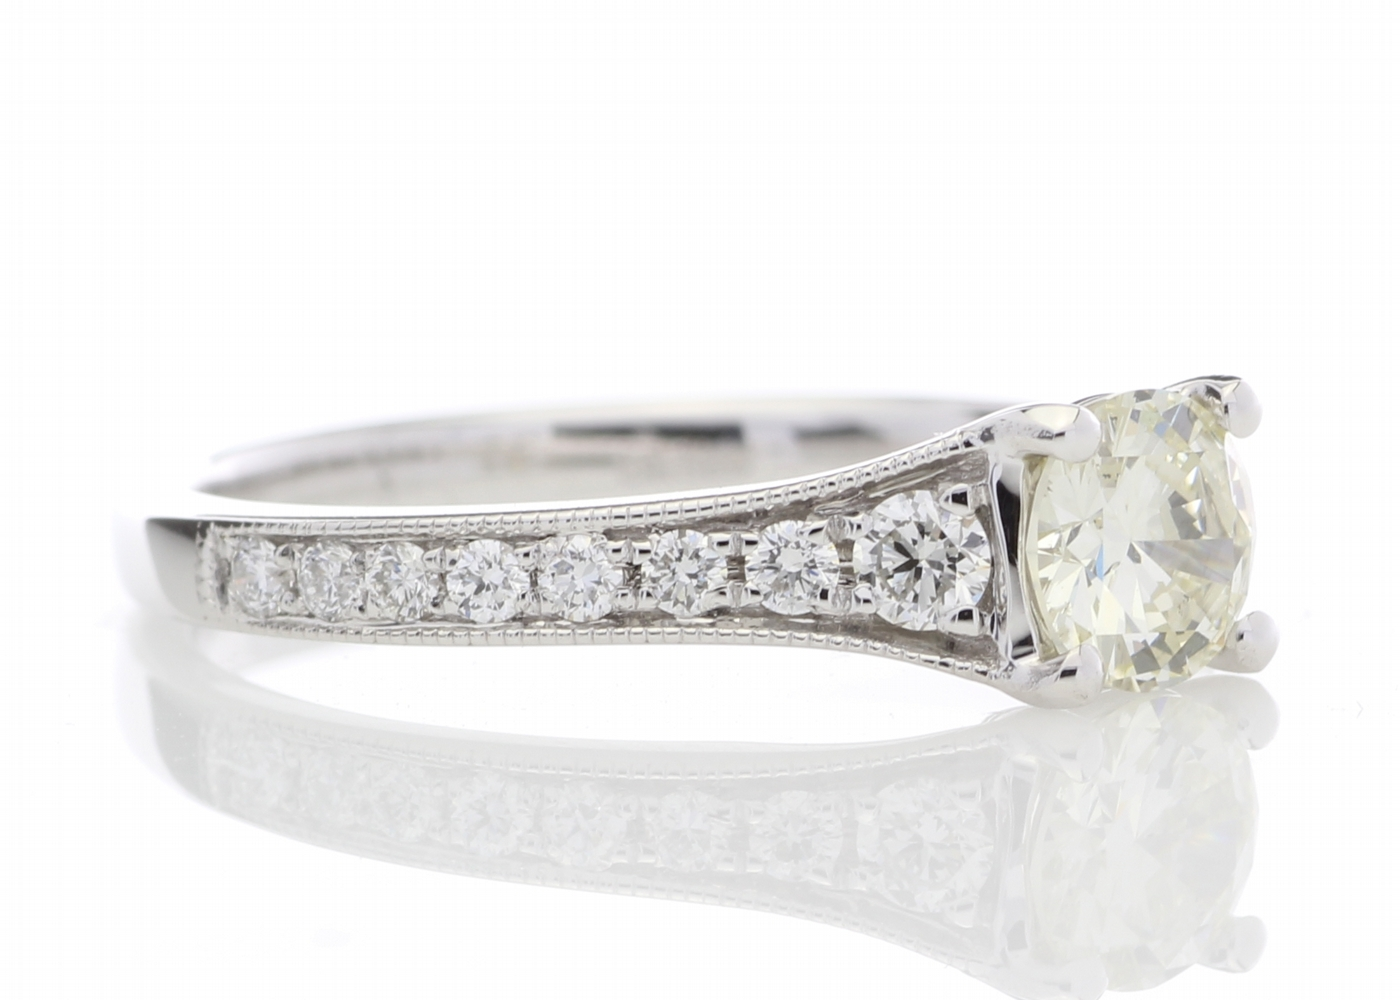 Lot 24 - 18ct White Gold Diamond Ring With Stone Set Shoulders 0.80 Carats